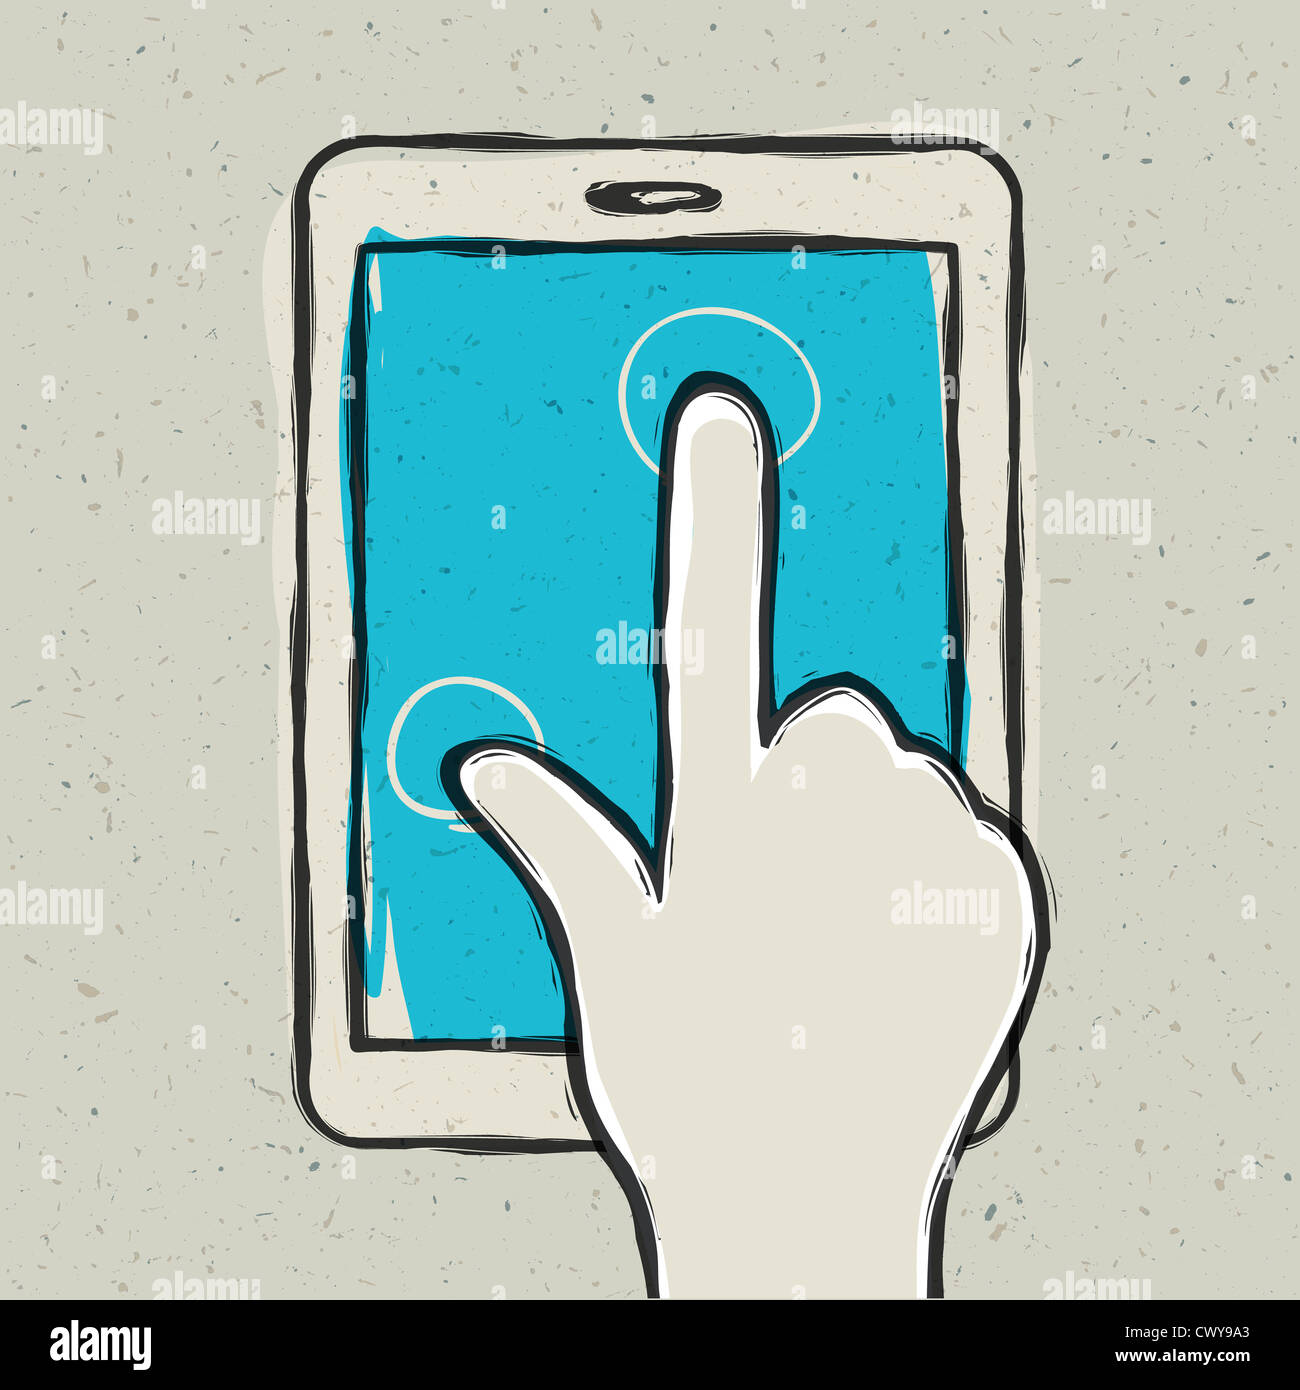 Abstract hand touching digital tablet - Stock Image